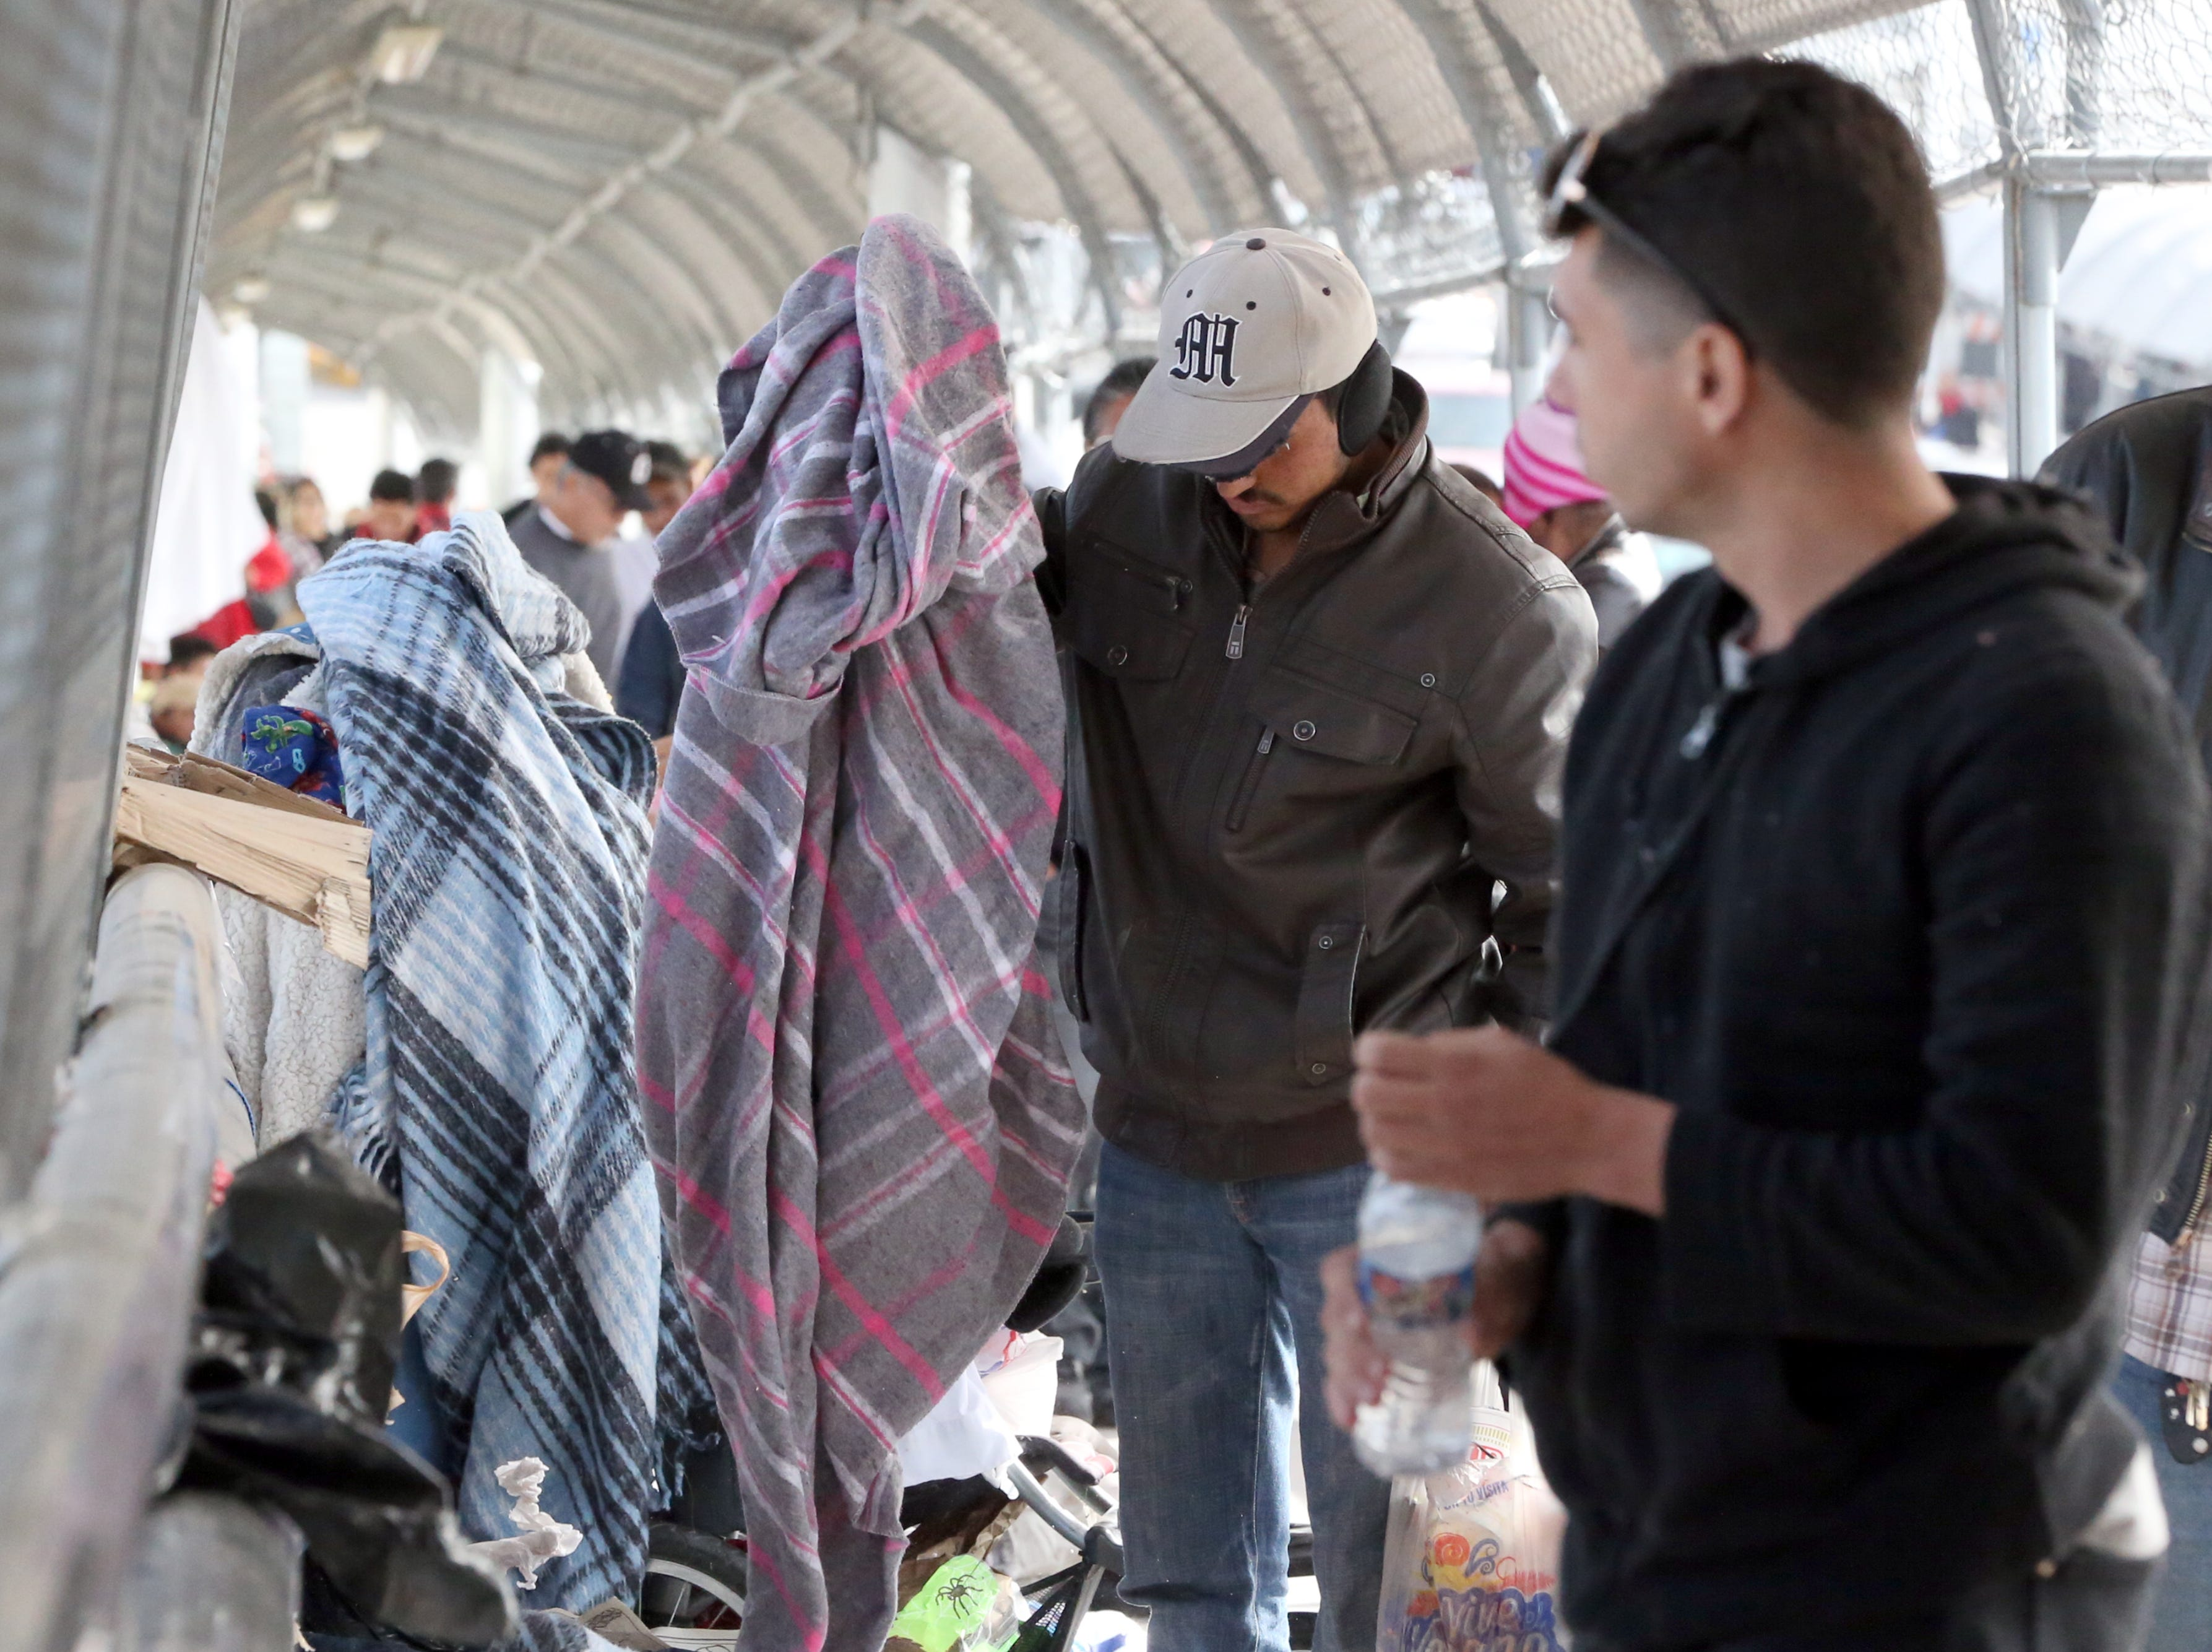 Just over 100 undocumented migrants were camped on the Paso Del Norte international bridge waiting to enter the U.S. Thursday.